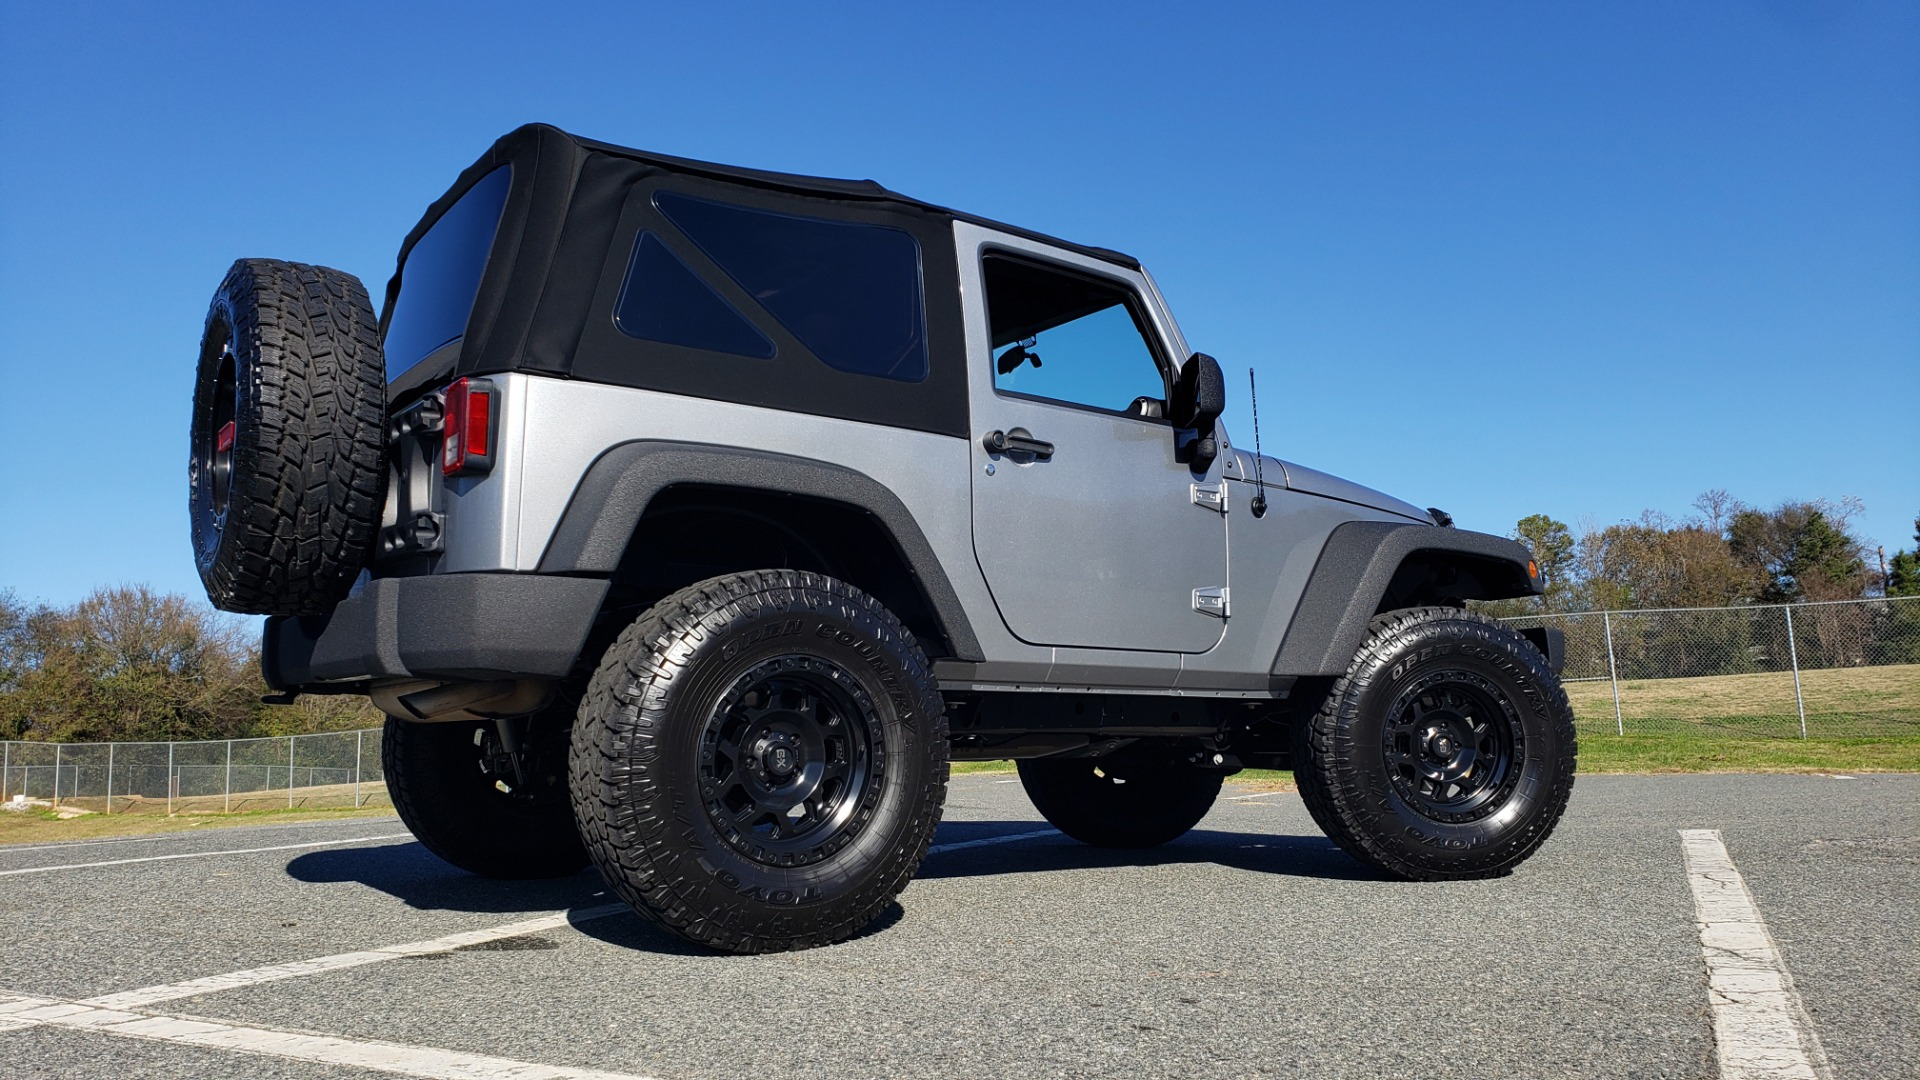 Used 2017 Jeep WRANGLER SPORT 4X4 / 3.6L V6 / MANUAL / AIR / LED LIGHTING / TOW GRP / AL for sale $31,900 at Formula Imports in Charlotte NC 28227 3